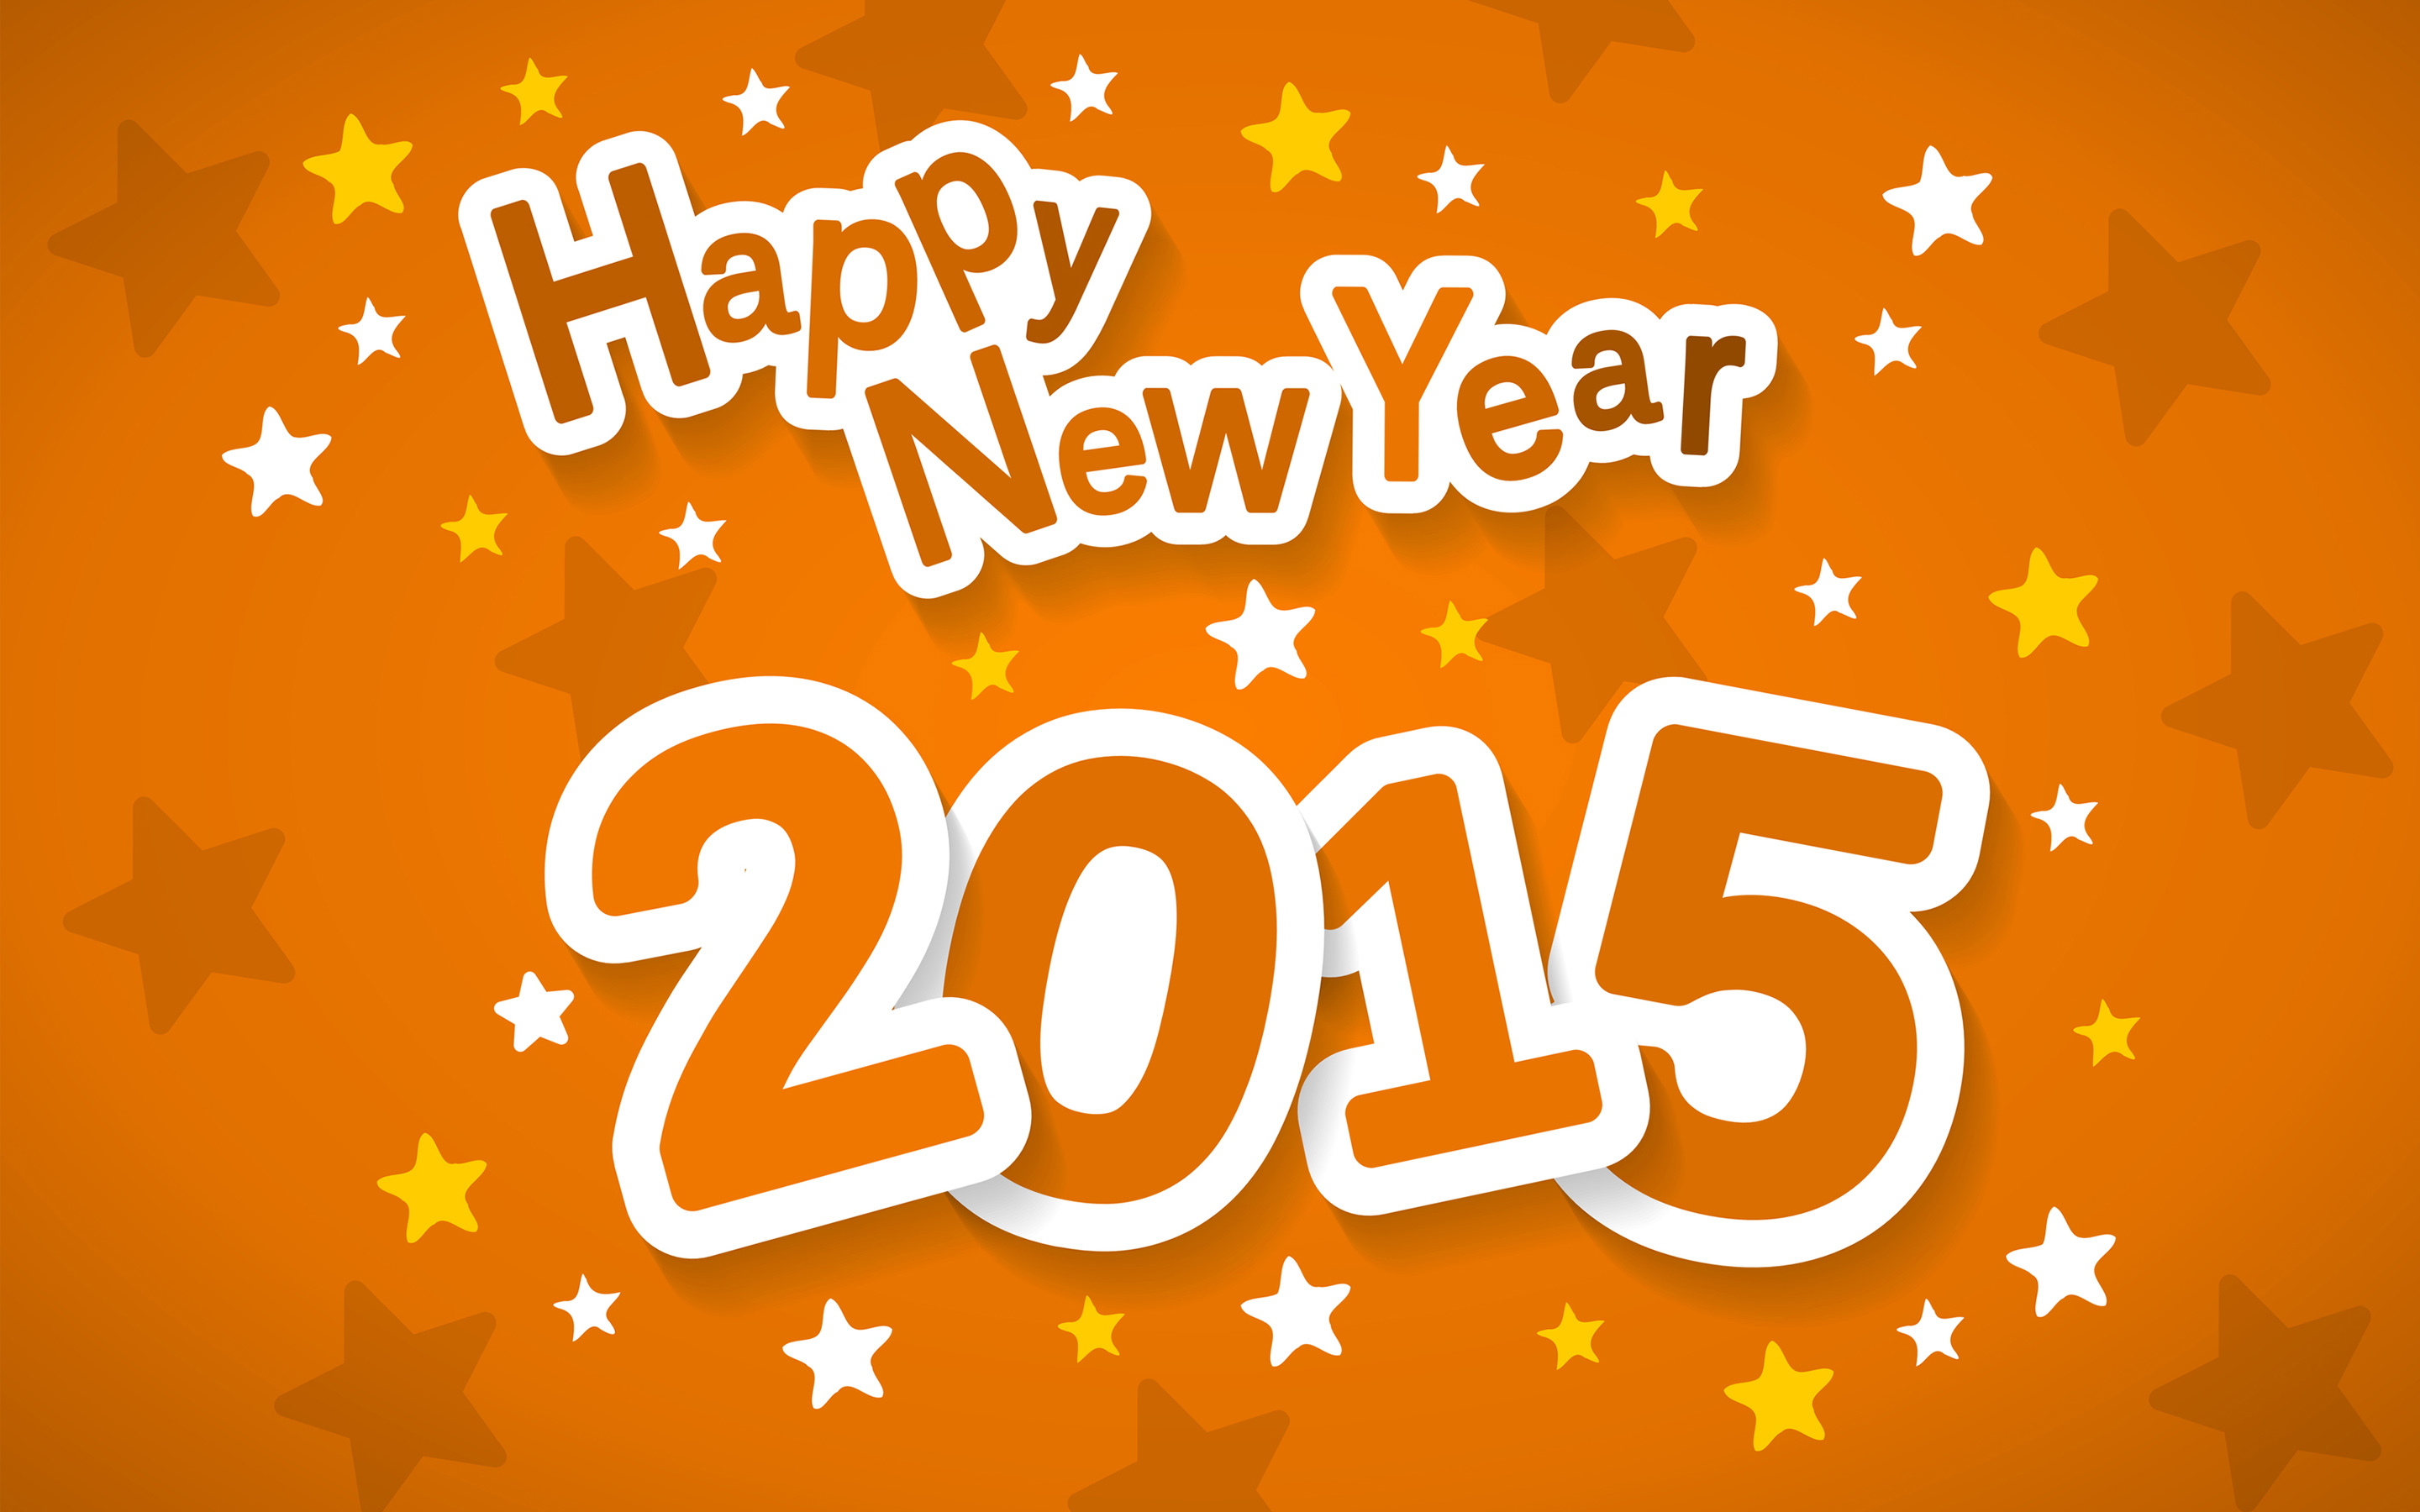 Happy New Year 2015 1548.18 Kb